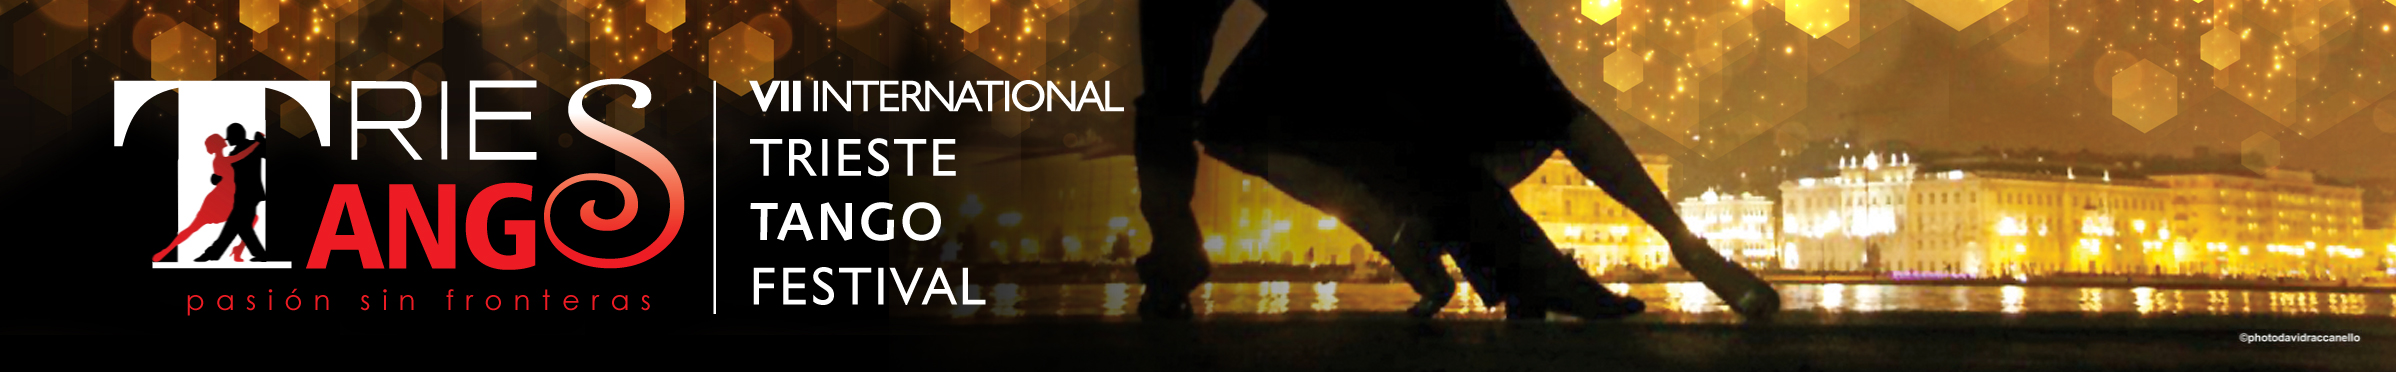 International Trieste Tango Festival